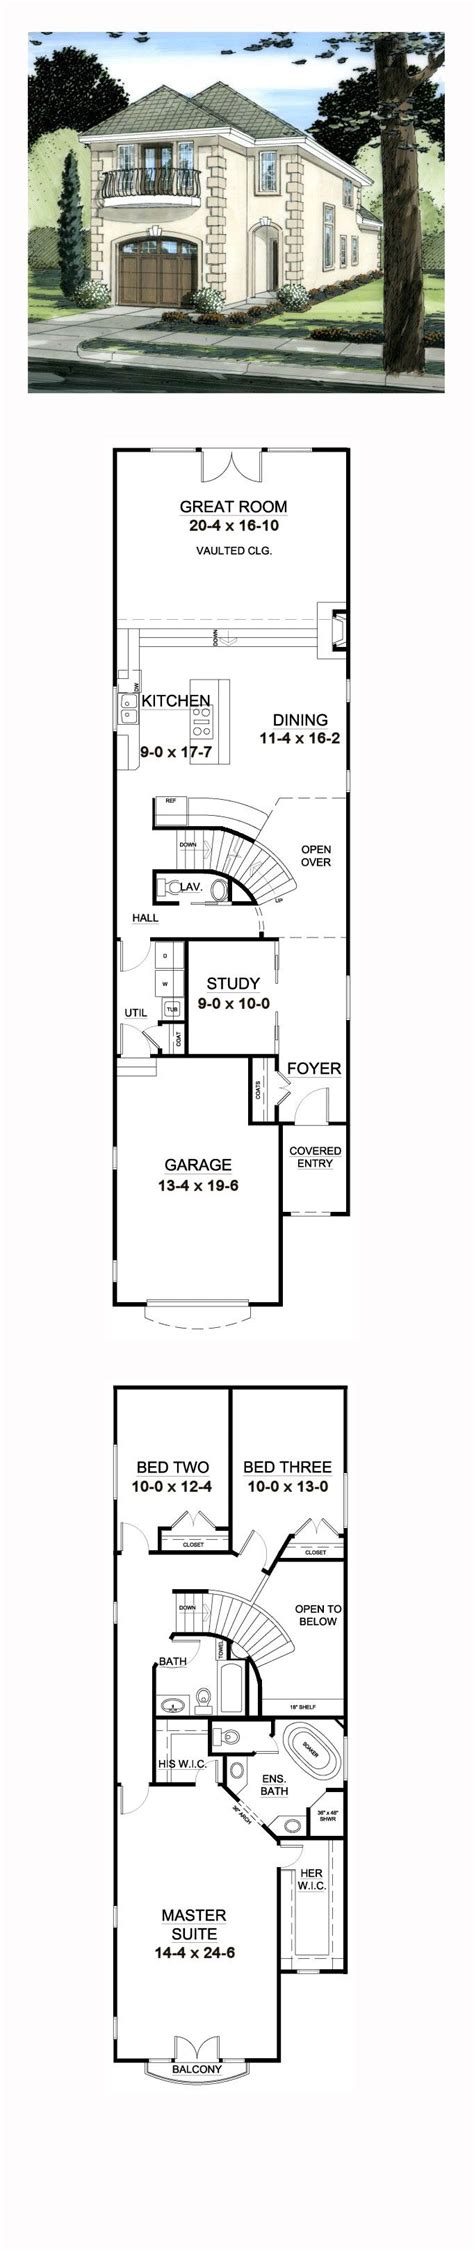 narrow home plans 25 best ideas about narrow house plans on